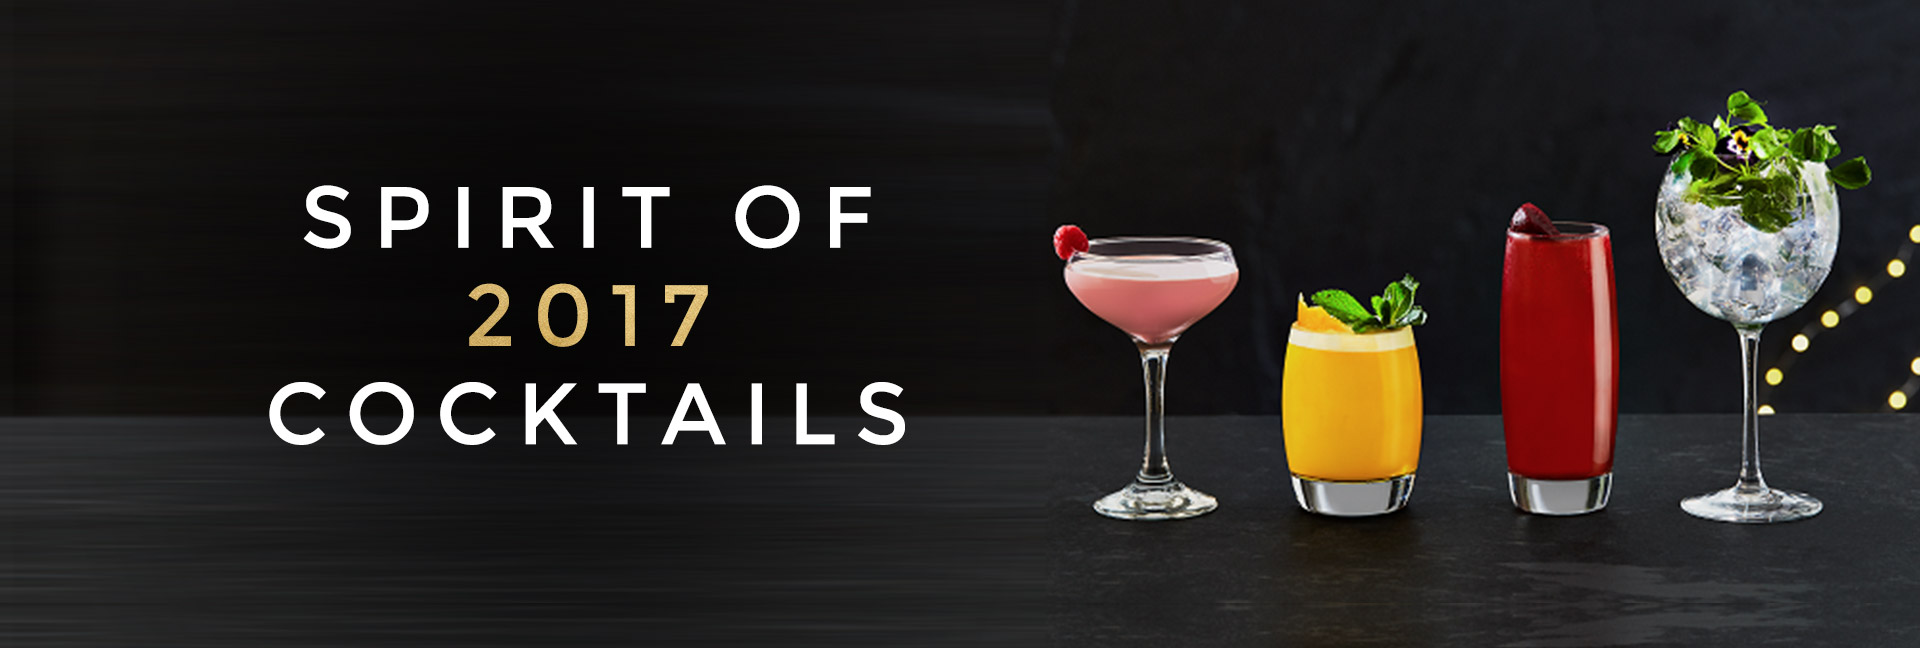 Spirit of 2017 cocktails at All Bar One Chiswell Street